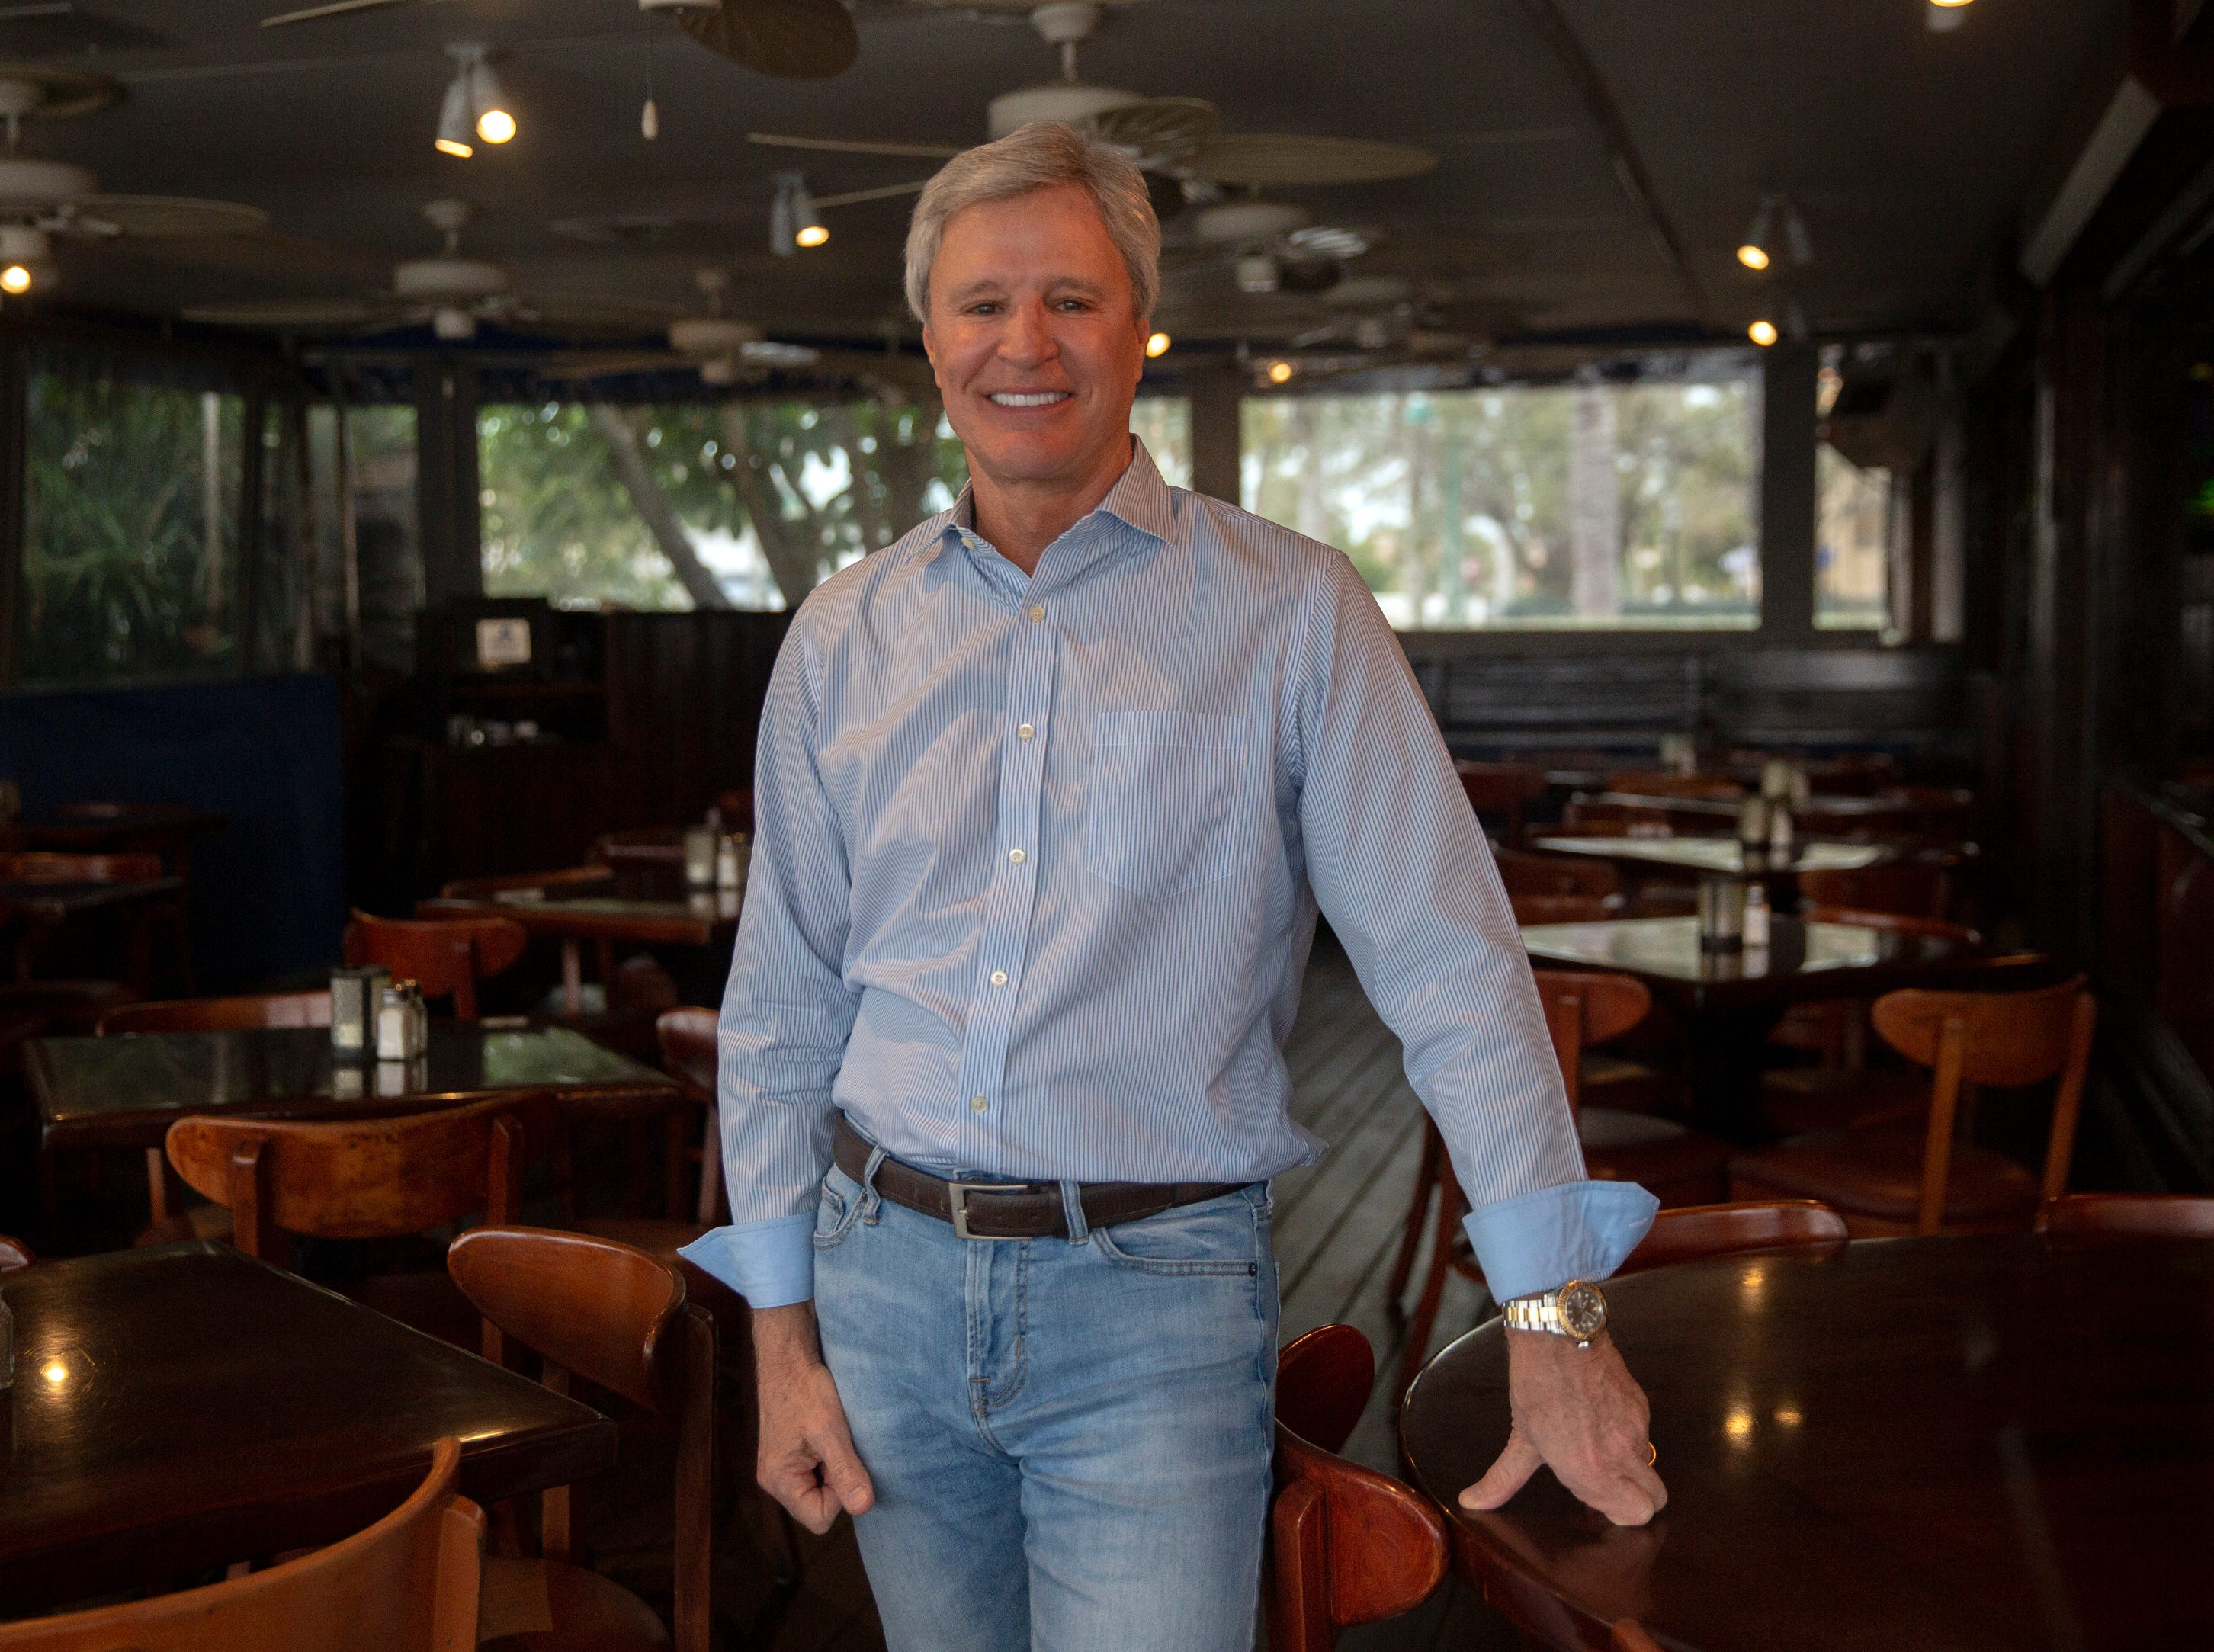 T.E.I. Industries Founder, President and C.E.O. Doug Traina, poses for a portrait, Wednesday, Feb. 13, 2019, at The Dock restaurant in Naples. Traina's company is the new owner of The Dock restaurant.